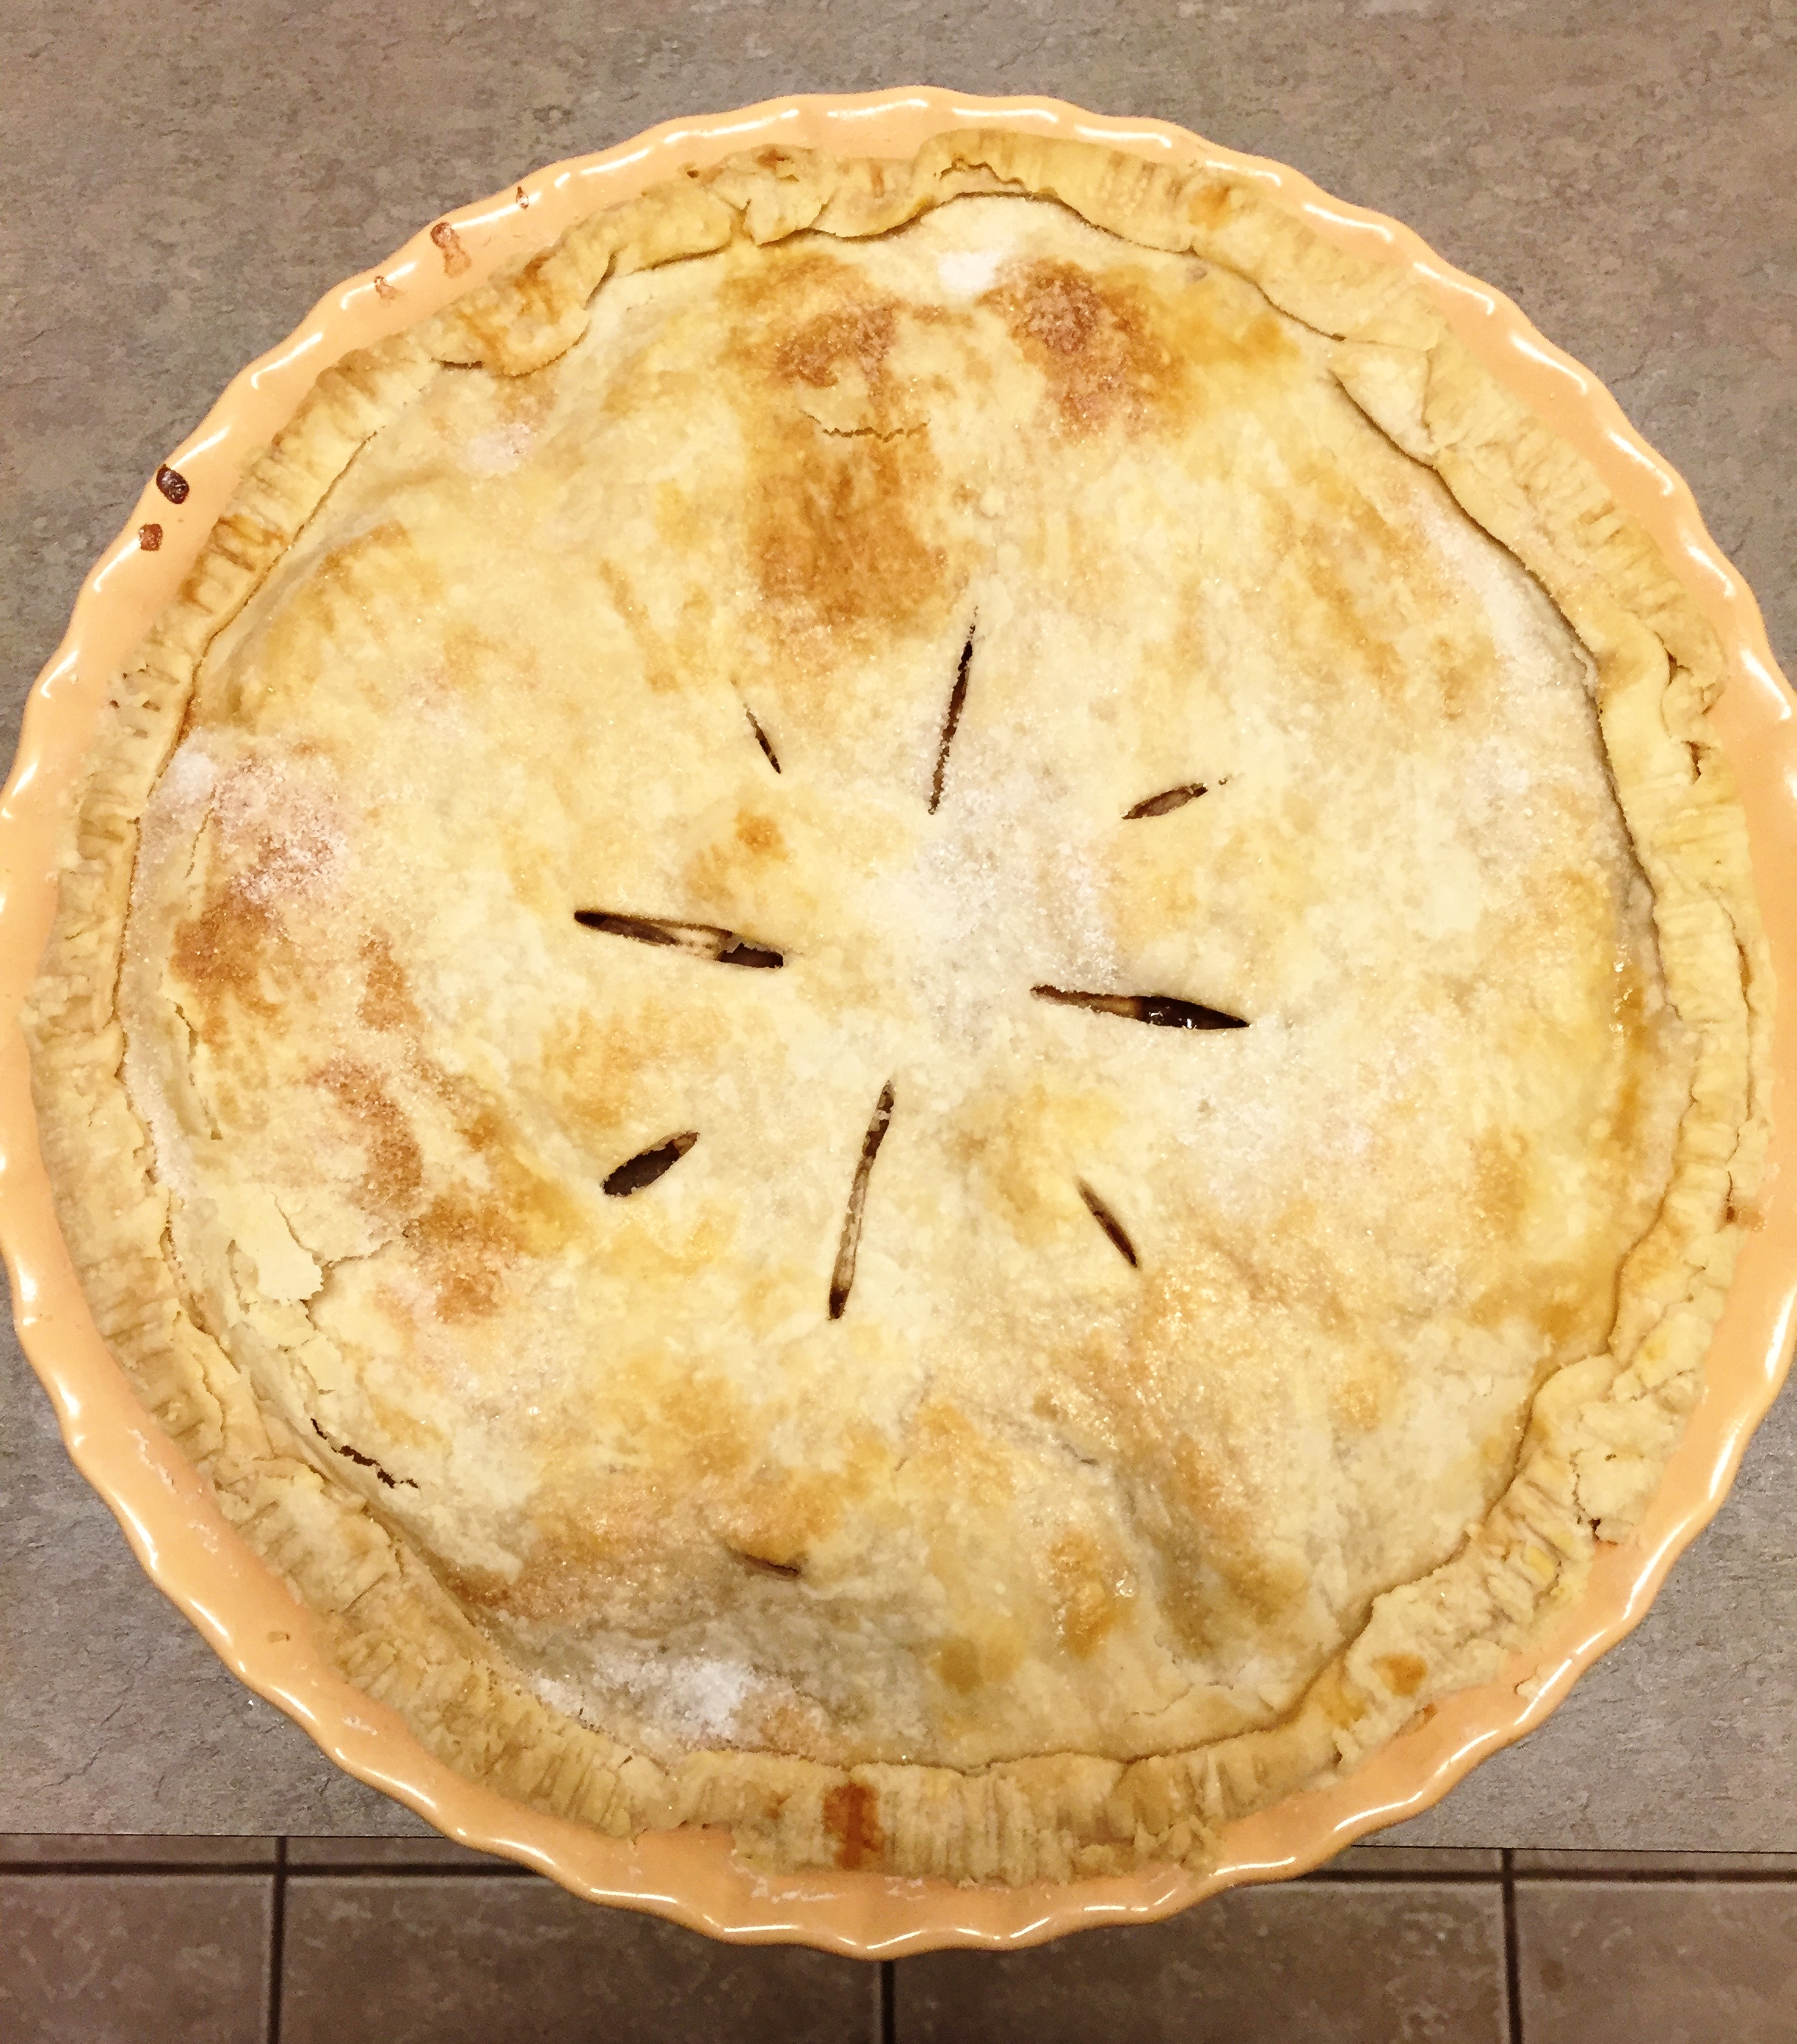 Apple pie, anyone?